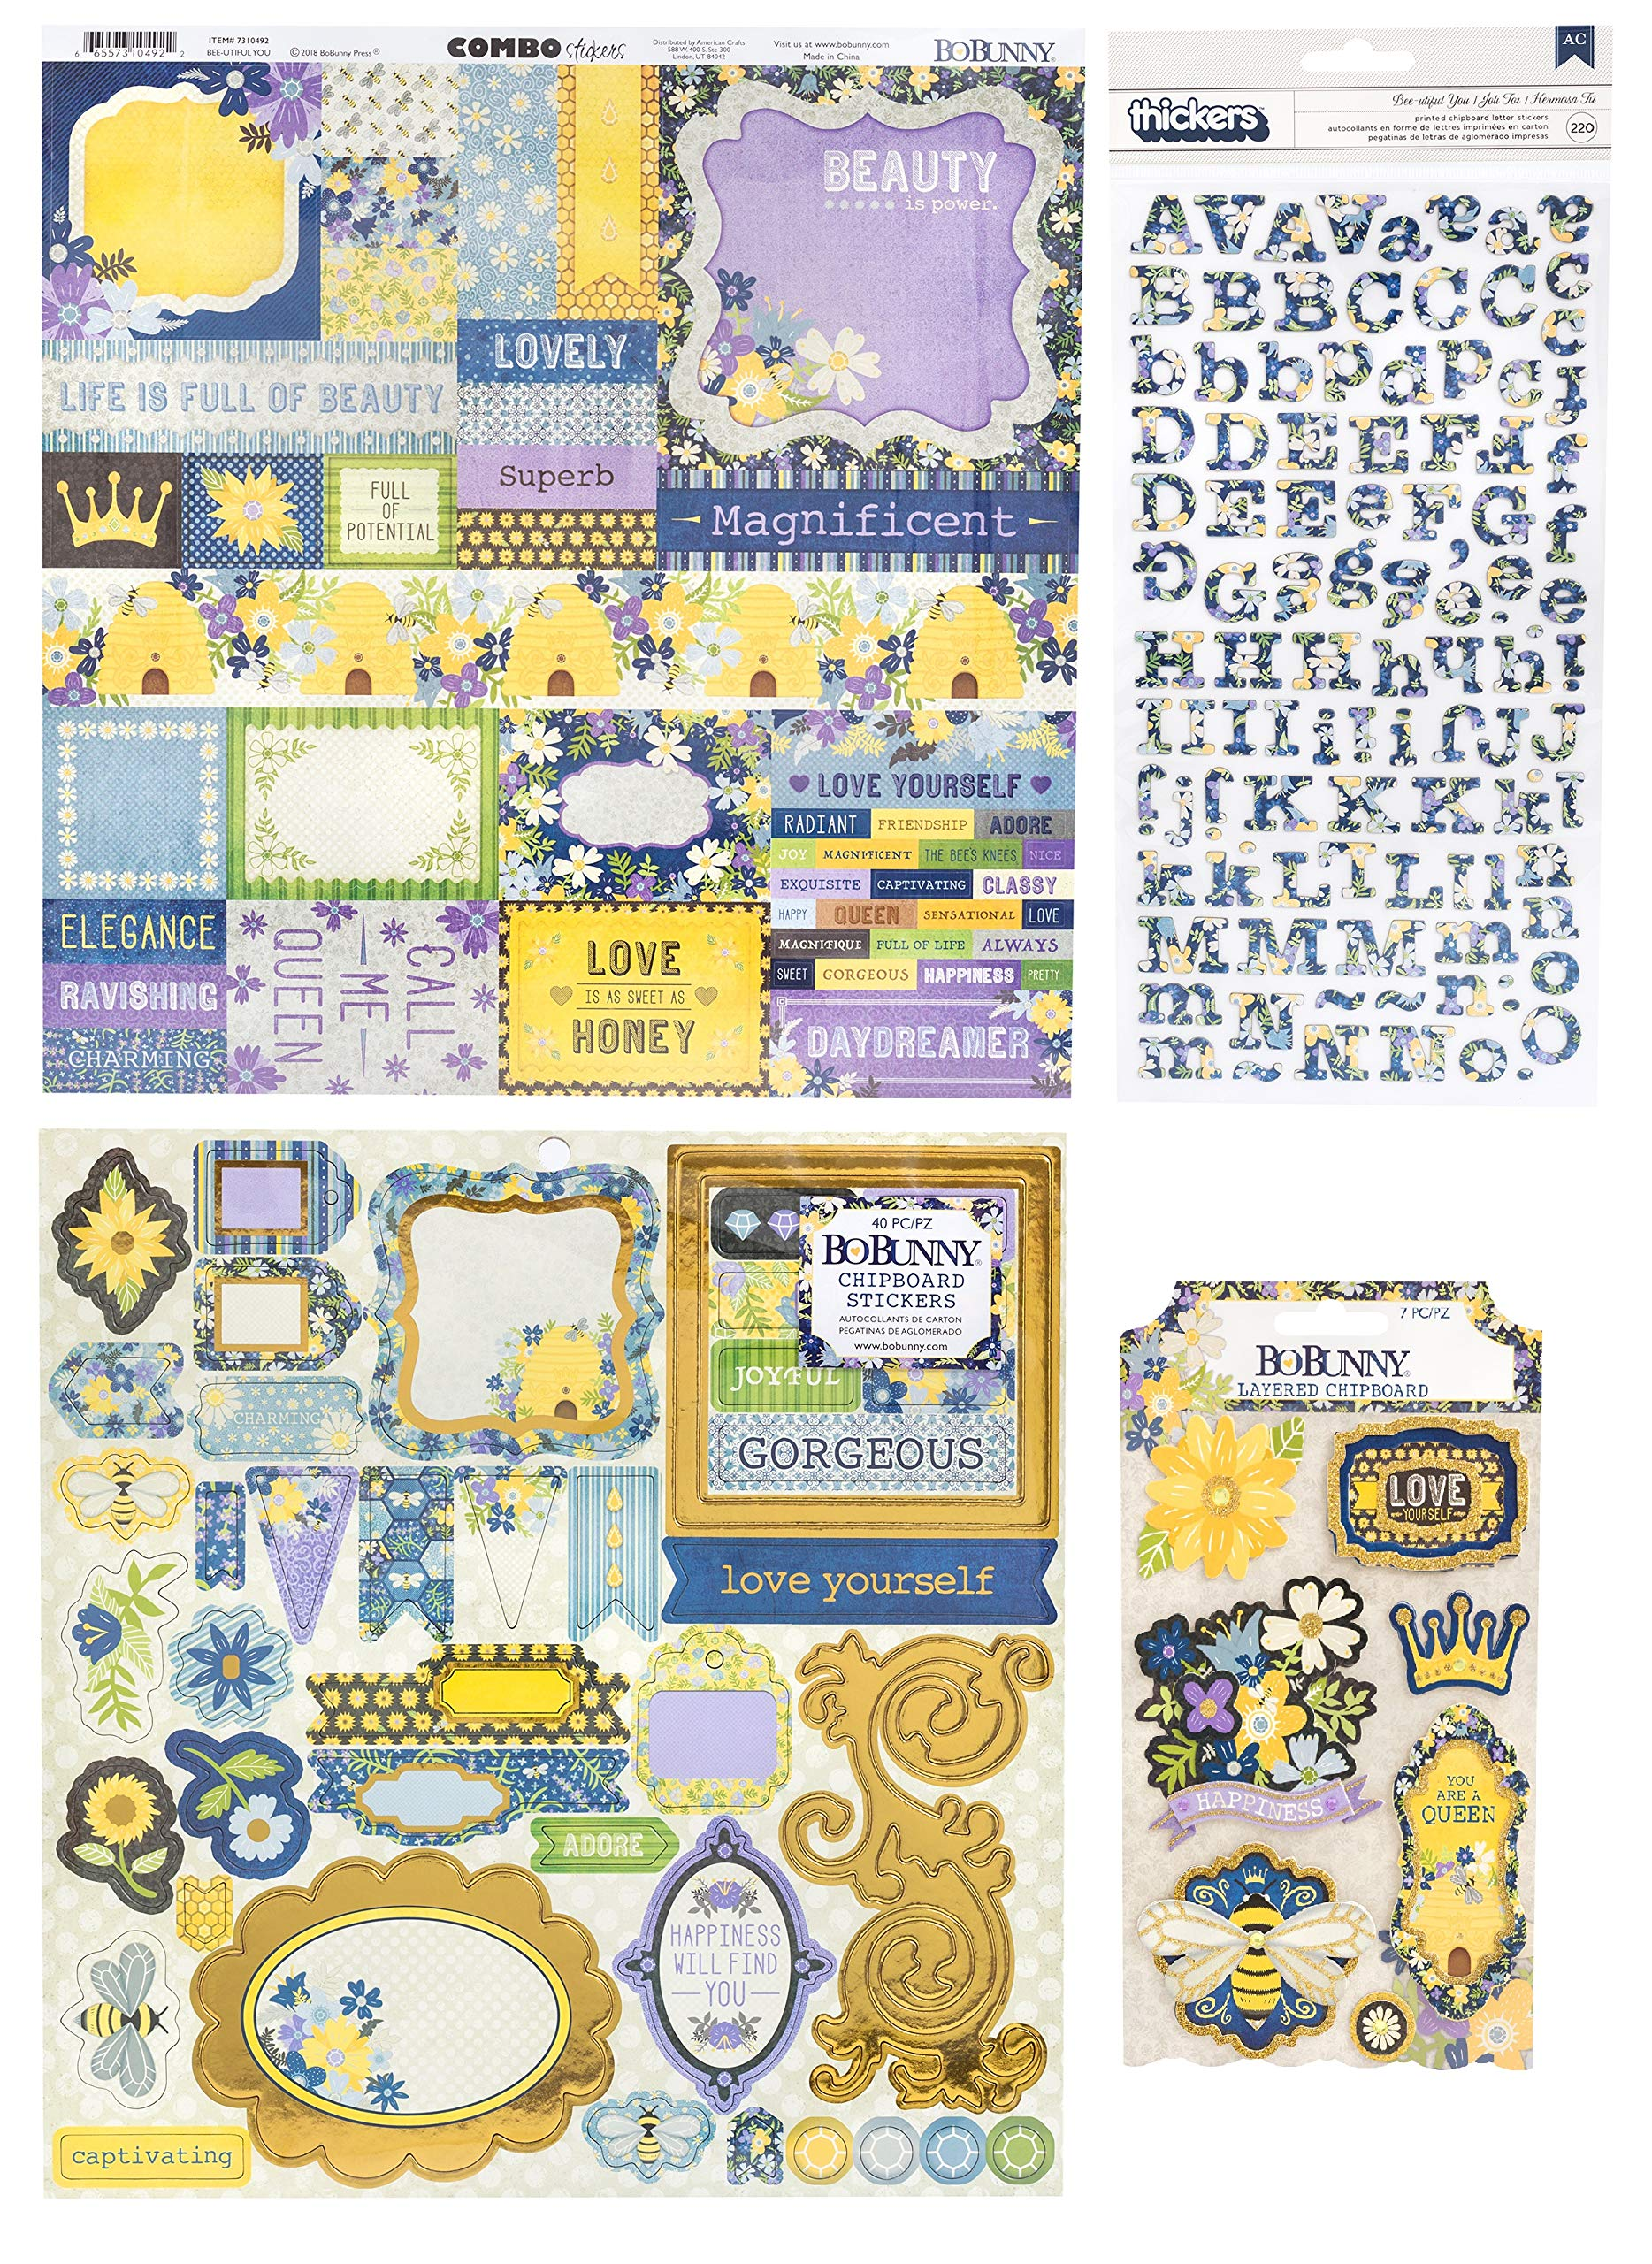 99 Honeybee and Bumblebee Stickers Assortment with 200 Alphabet and Numbers Sticker Pack   for Scrapbooking, Planner, Bullet Journals, Album, Calendars, DIY Crafts